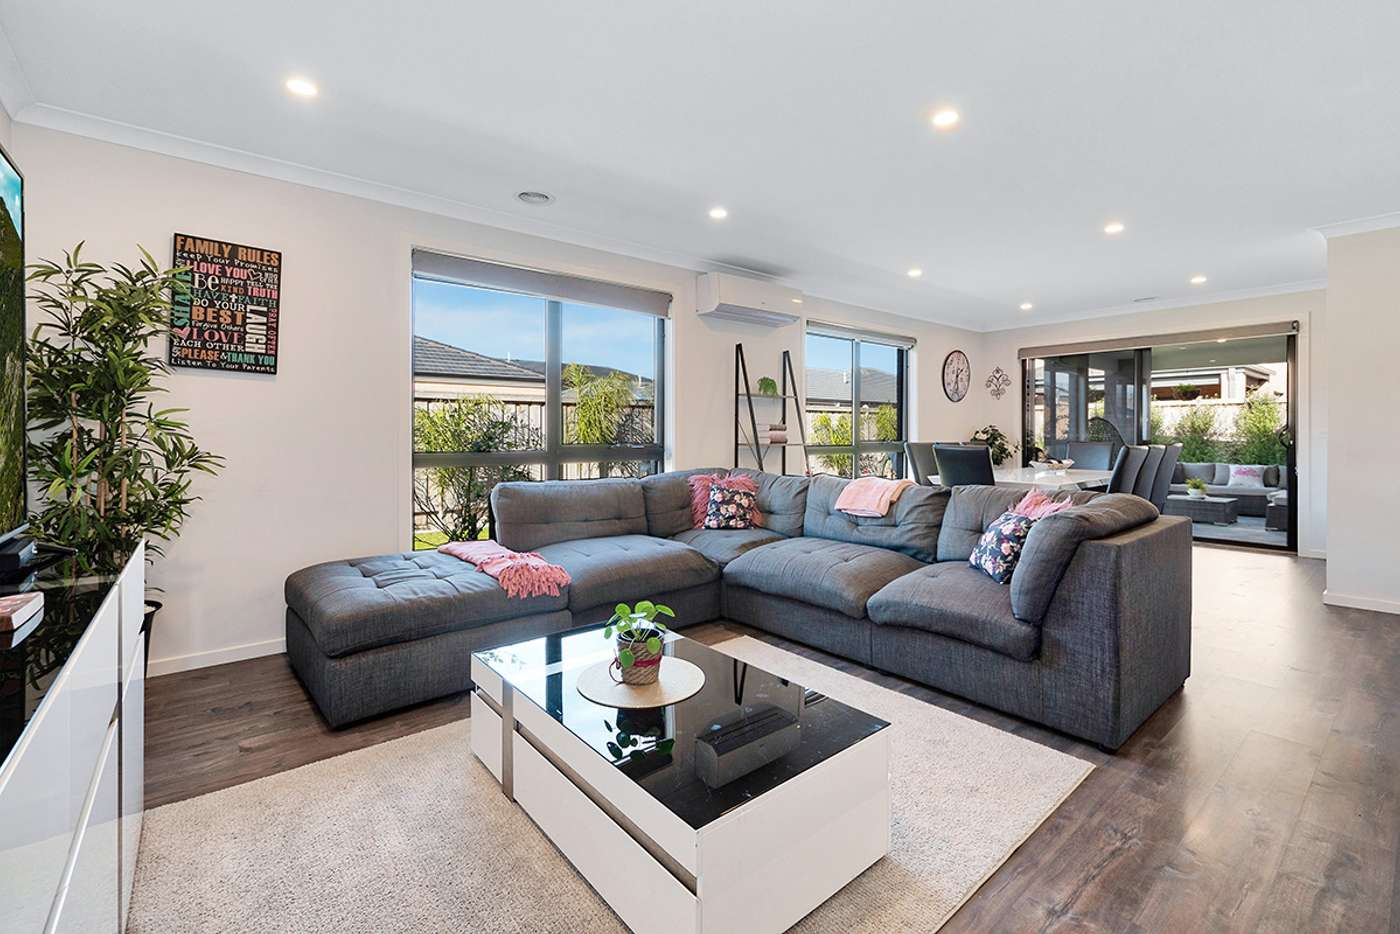 Seventh view of Homely house listing, 10 Cartwright Grove, Cranbourne East VIC 3977